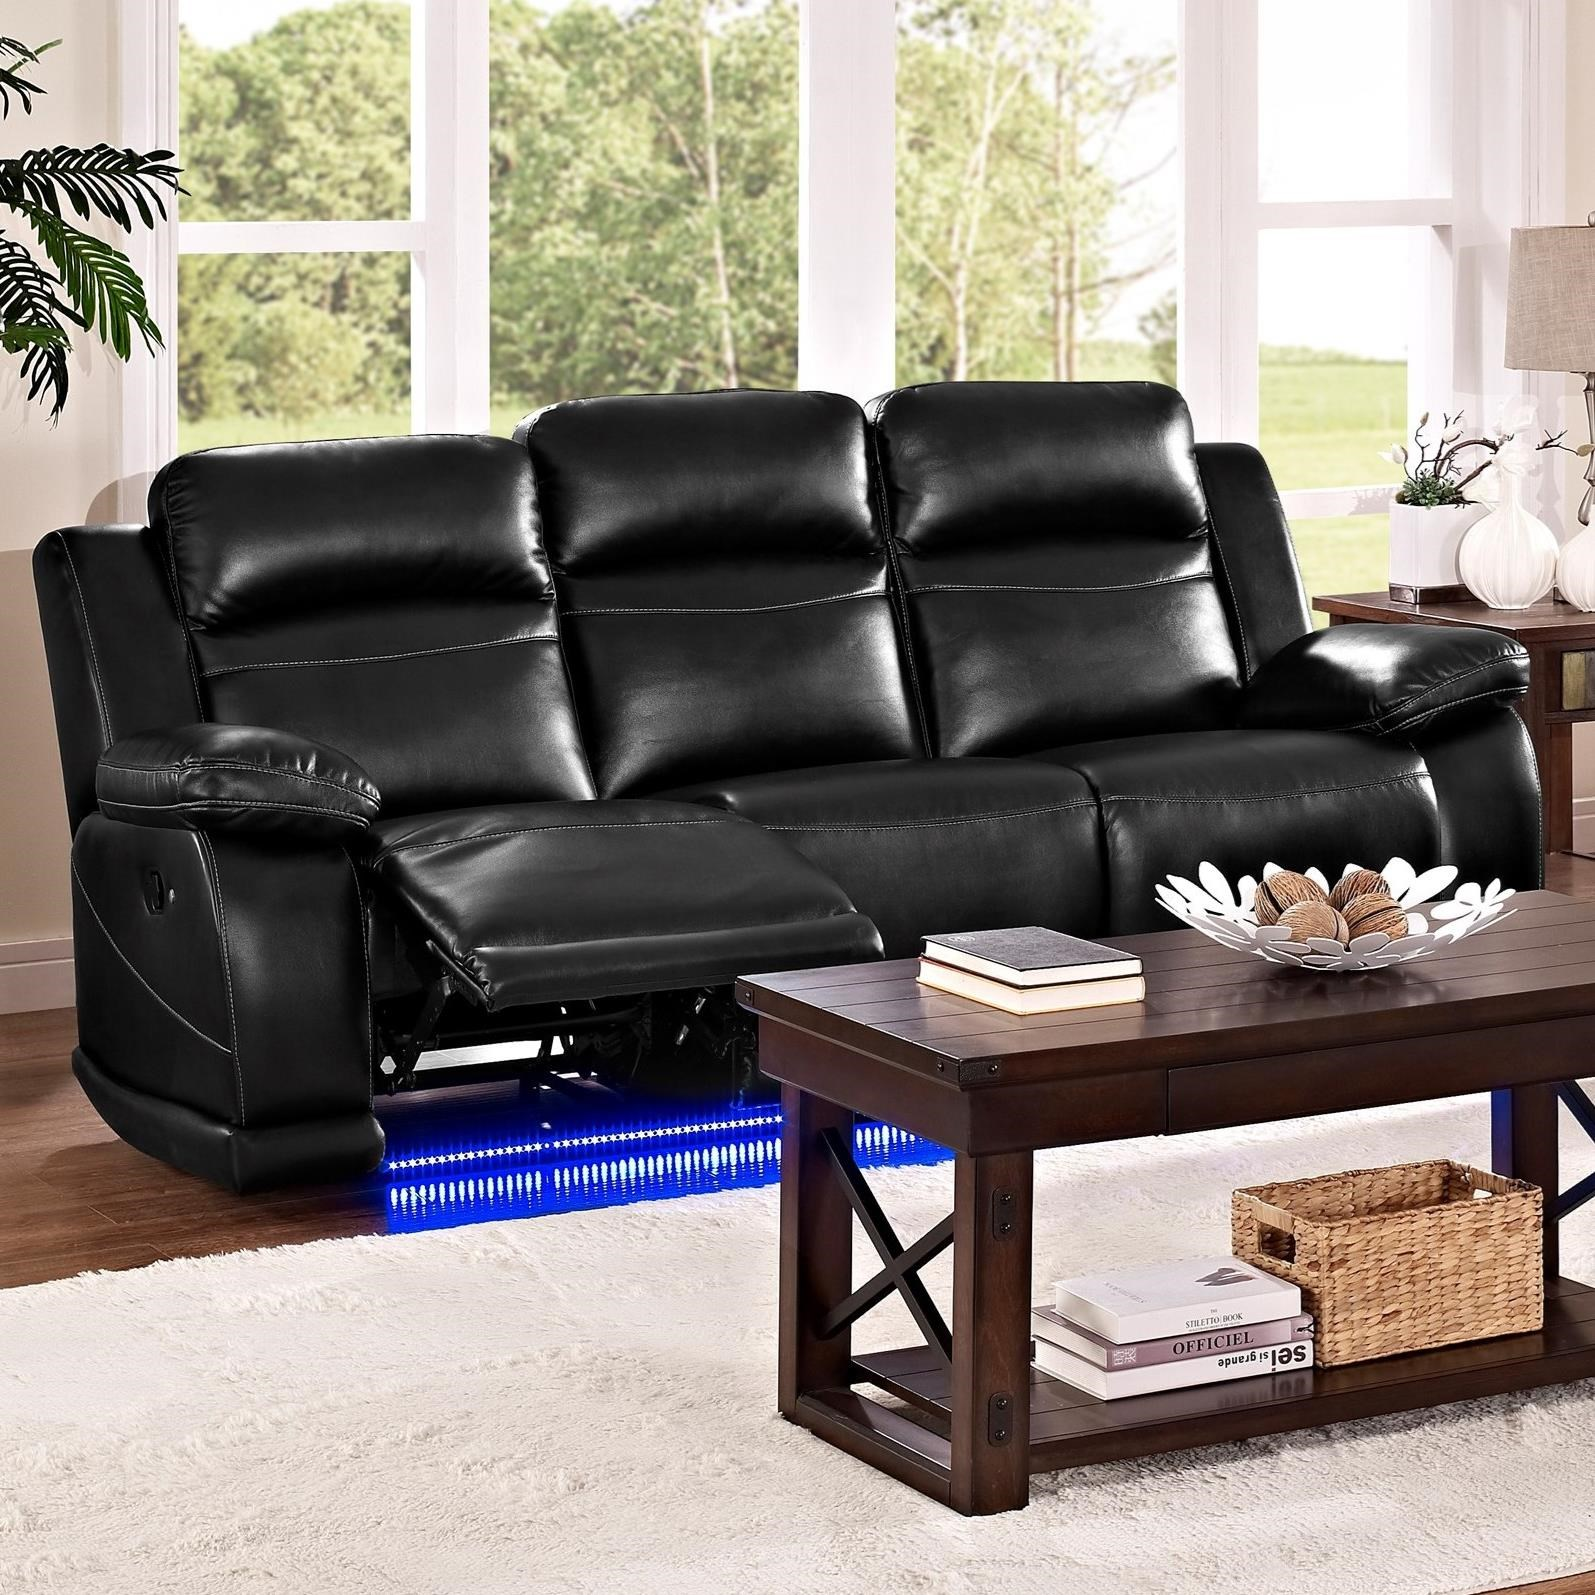 albany leather sofa belgium manufacturers new classic vega u3822 30 casual reclining with lighted base by